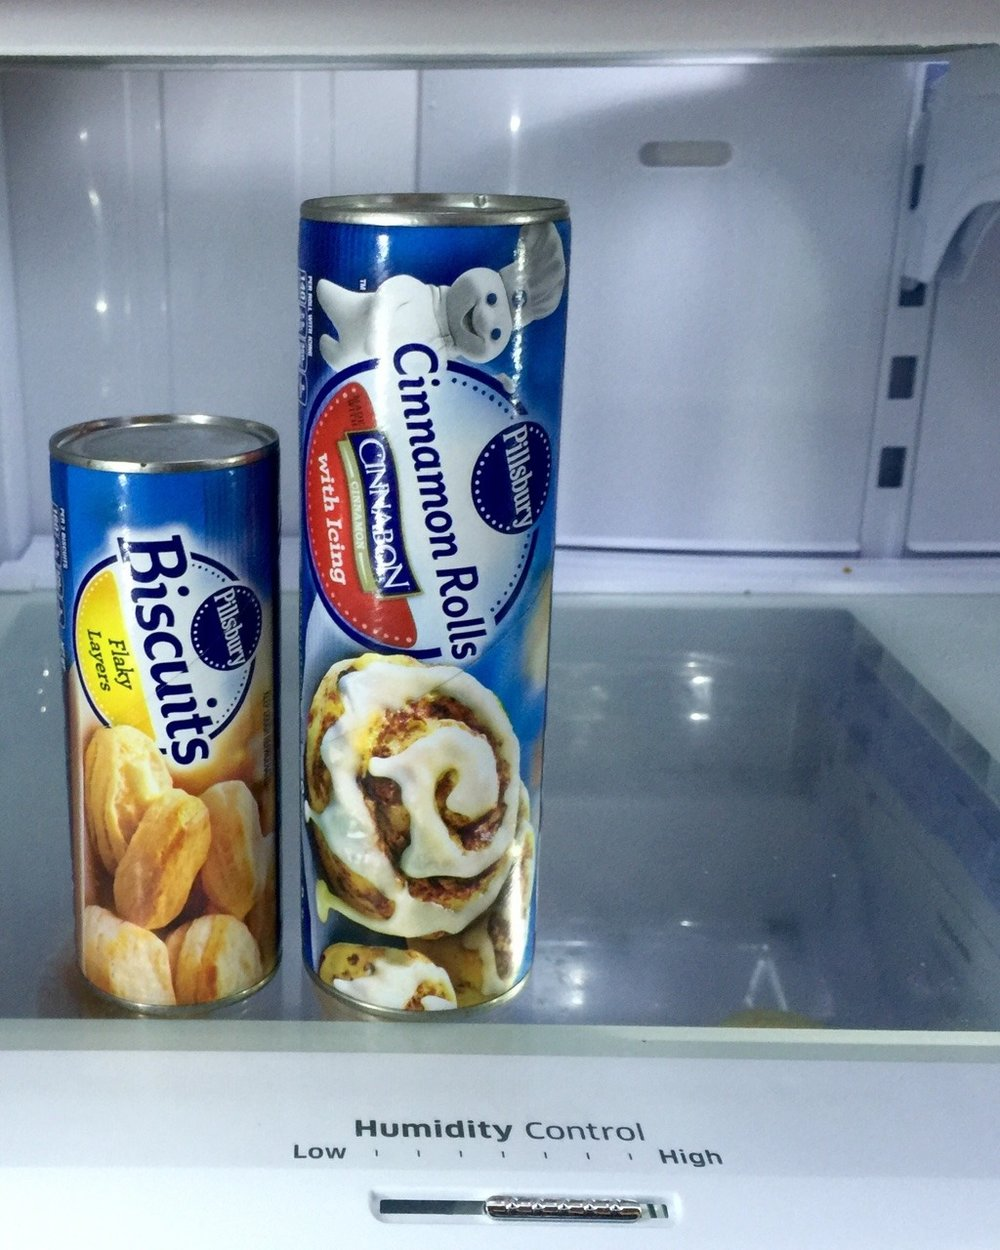 CLXVI. Pillsbury Dough Boy, Personified -    I took days off, weeks in fact. It was a break - a much needed one. I was straddling the mislabel of physical therapy with a workout. It sure as hell worked me out. I saw cuts and I felt aches - decreasingly so as time went on. The concept of rest days was no longer a foreign concept, nor were the twin identities of protein and power, and carb and cardio.    I was determined and developed a routine that inadvertently altered another in-place routine. The after-effects were like tremors before a full-fledged earthquake. My ears were sticking out again. My set of meticulously cared for white teeth, no plaque in sight, began to protrude once more.    How can the body be so fickle and yet so robust?     So I went in the other direction - Immobility and upped the food intake. The concept of gains reared its head, but not in the way of Kardashian-inspired baggage: the hard shell exterior. This baggage was the far more functional one - the canvas one that has an extra zipper with the option to expand your luggage, increasing the space it takes up by a couple of inches, enabling it to weigh more.    Sometimes I'm happy to be the Pillsbury dough woman.    If all it takes is a poke to make me giggle, to make me laugh like I used to, then white chef's hat I shall don- no questions asked.    Other times, I don't want to wear the all white suit with a pouch that sticks out and that rolls with every waddle-like movement. Then again, I've been accustomed to a waddle. It's some new sort of gait that is so unlike me but is required because of the gap between my thighs.    I don't want to start from square-one: to mold and carve new layers of protrusion into something more straight-edged and 2-D. Also, is it a coincidence that the color white is worn when honoring the dead with last rights?    Then again, I just purchased white attire for a summer wedding because of its light and airy vibe.    So here I am- going back and forth about what I want.There is pent up energy that has to be unleashed. And that's what I want.    I want to be that Pillsbury cinnamon roll or biscuit cylinder. I want to be unwound and stretched out, my internal layer to be revealed.   I want for all of it to take, like a poke of a finger to make me laugh, a fingernail to slit the interior cardboard cylinder, releasing the pressure and exposing the glistening dough inside.    The pros far outweigh the cons in this instance. Pillsbury it is. And when all is said and done, mark my words, I'll be dressed in a cute white chef's hat,  a button down white shirt tucked into white pants with an equestrian-style thin blue ribbon wound around a neck  (without the Adam's apple) for Halloween this year.   I haven't dressed up in a costume in far too long.   I haven't laughed in just as long.